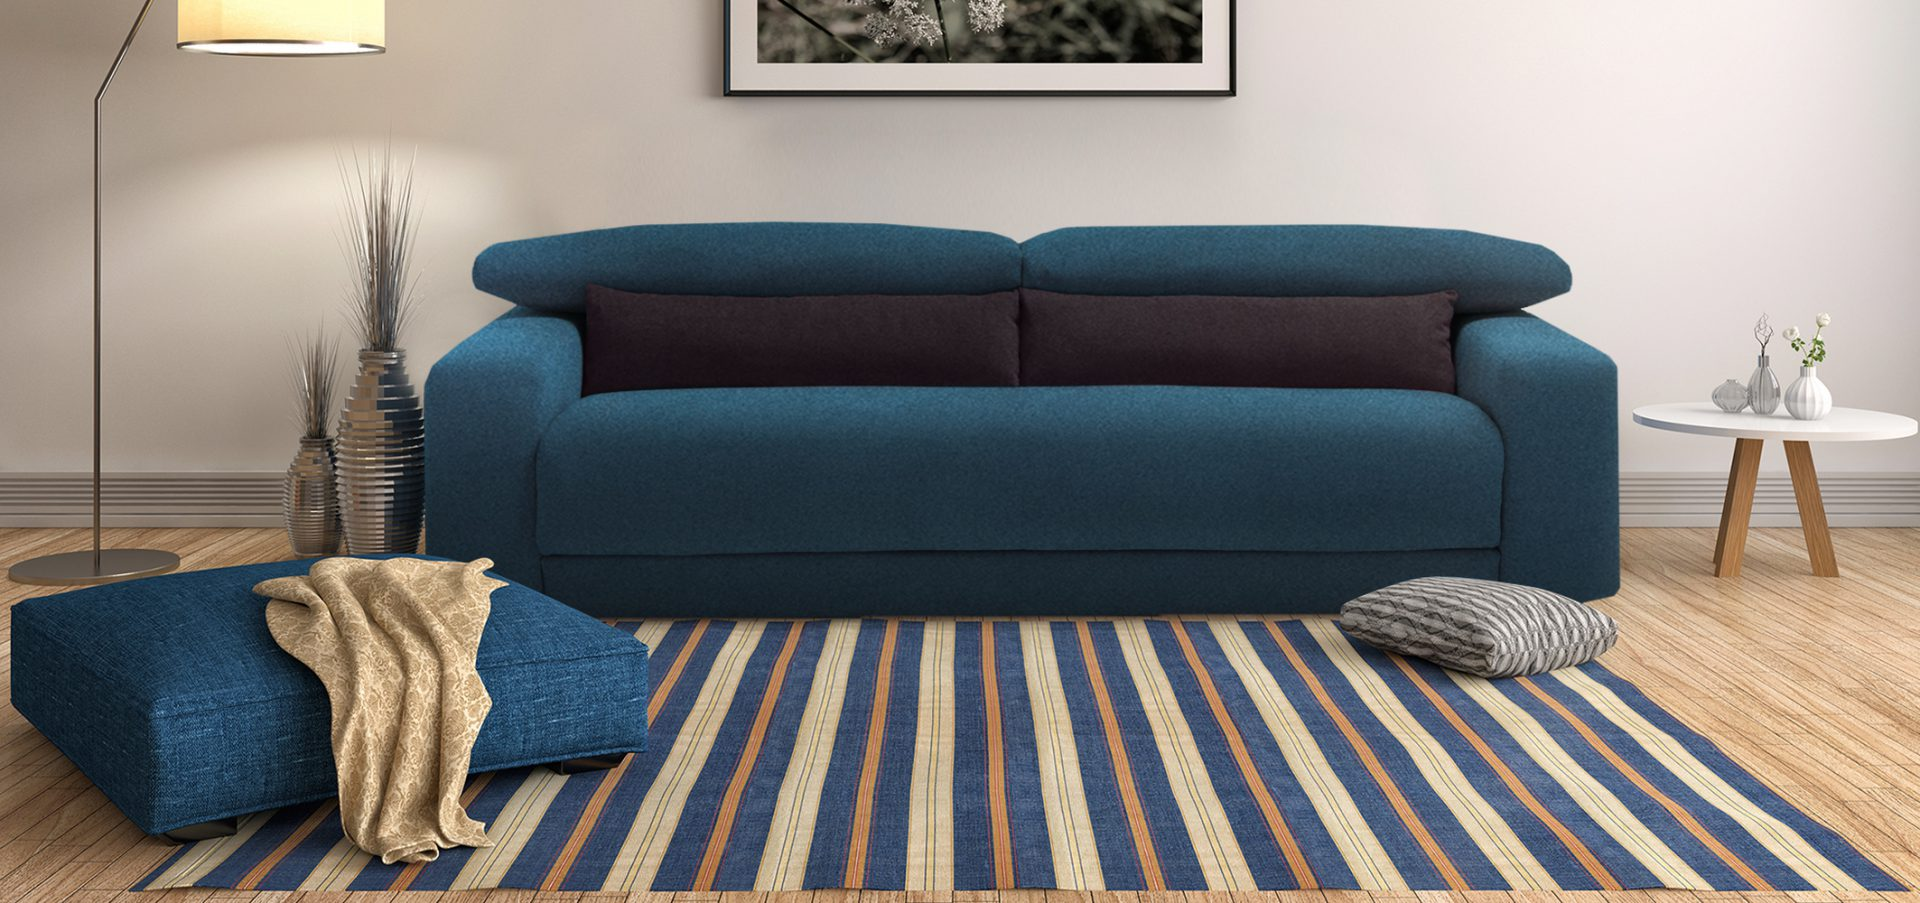 Space Saving Sofa pezzan usa space-saving sofa beds created in italy with style